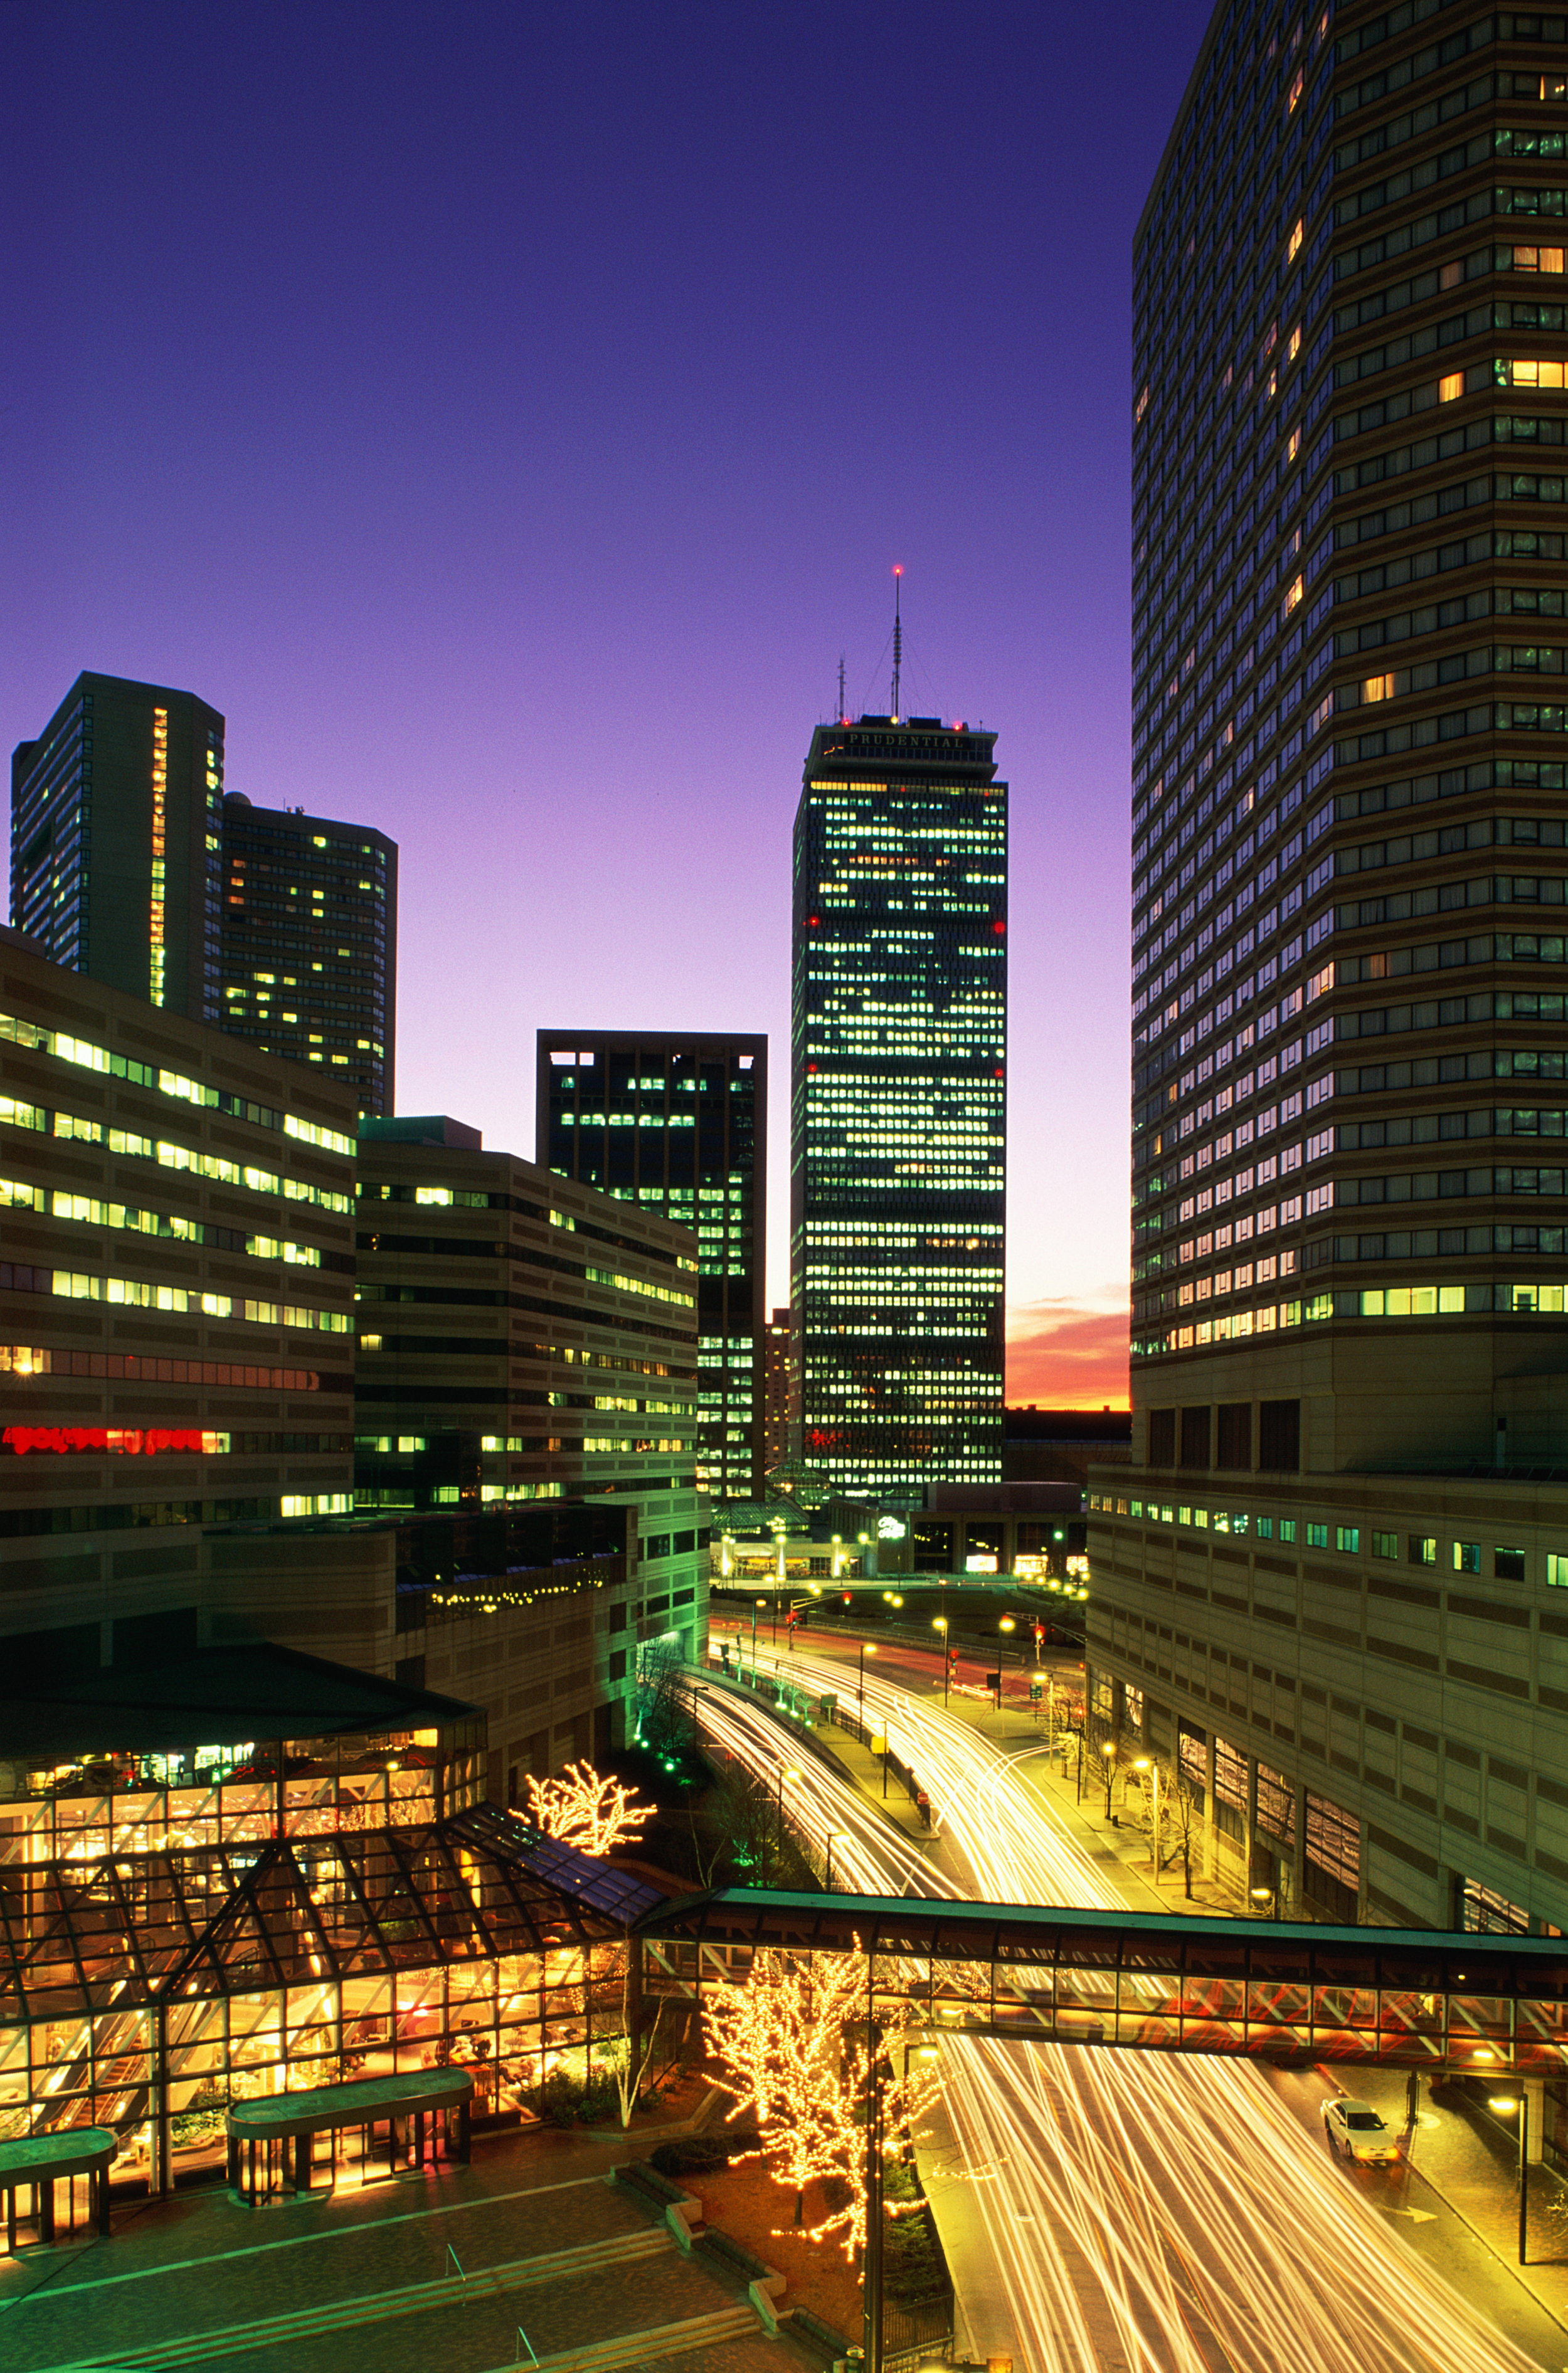 Copley Place at Night - GettyImages_10048113.jpg